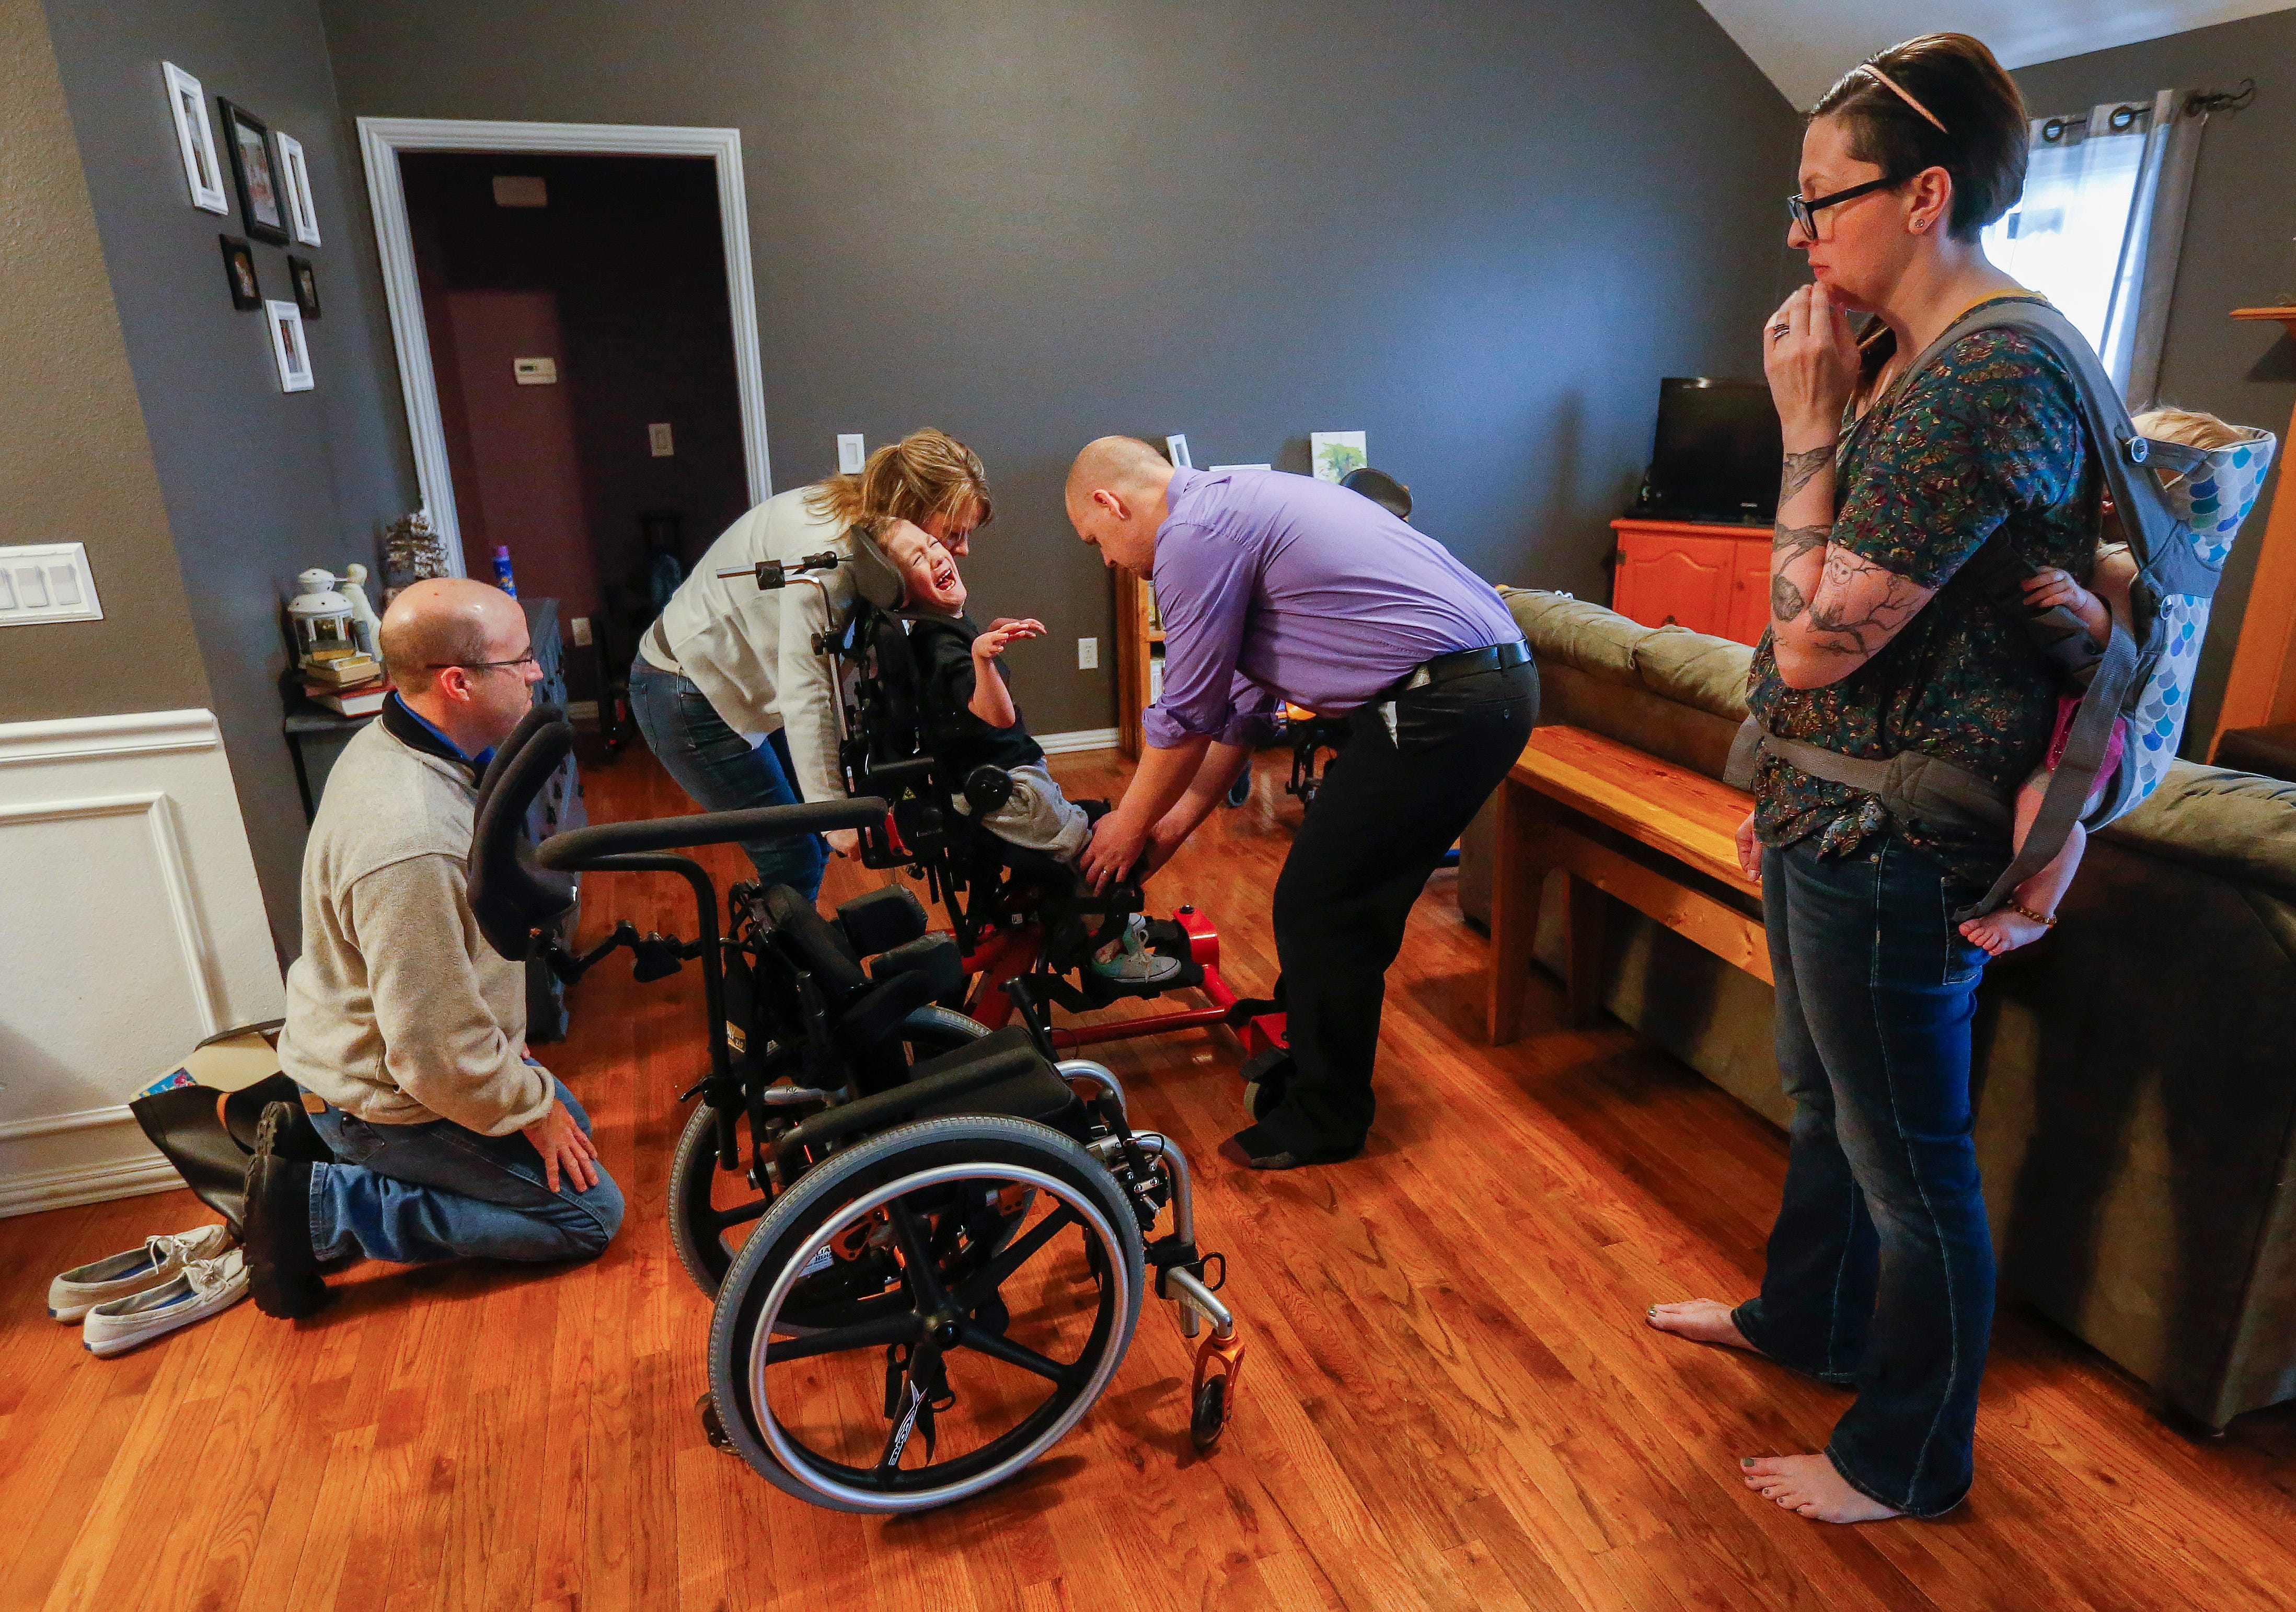 Ashley Markum watches her son Ayden Markum, 5, as Sara Rozell, a physical therapy assistant, and Josh Tinker, of Alliance Rehab & Medical Equipment, gets help from Chris Markum while working on Ayden's chair at the Markum's home in Rogersville on Monday, March 26, 2018.